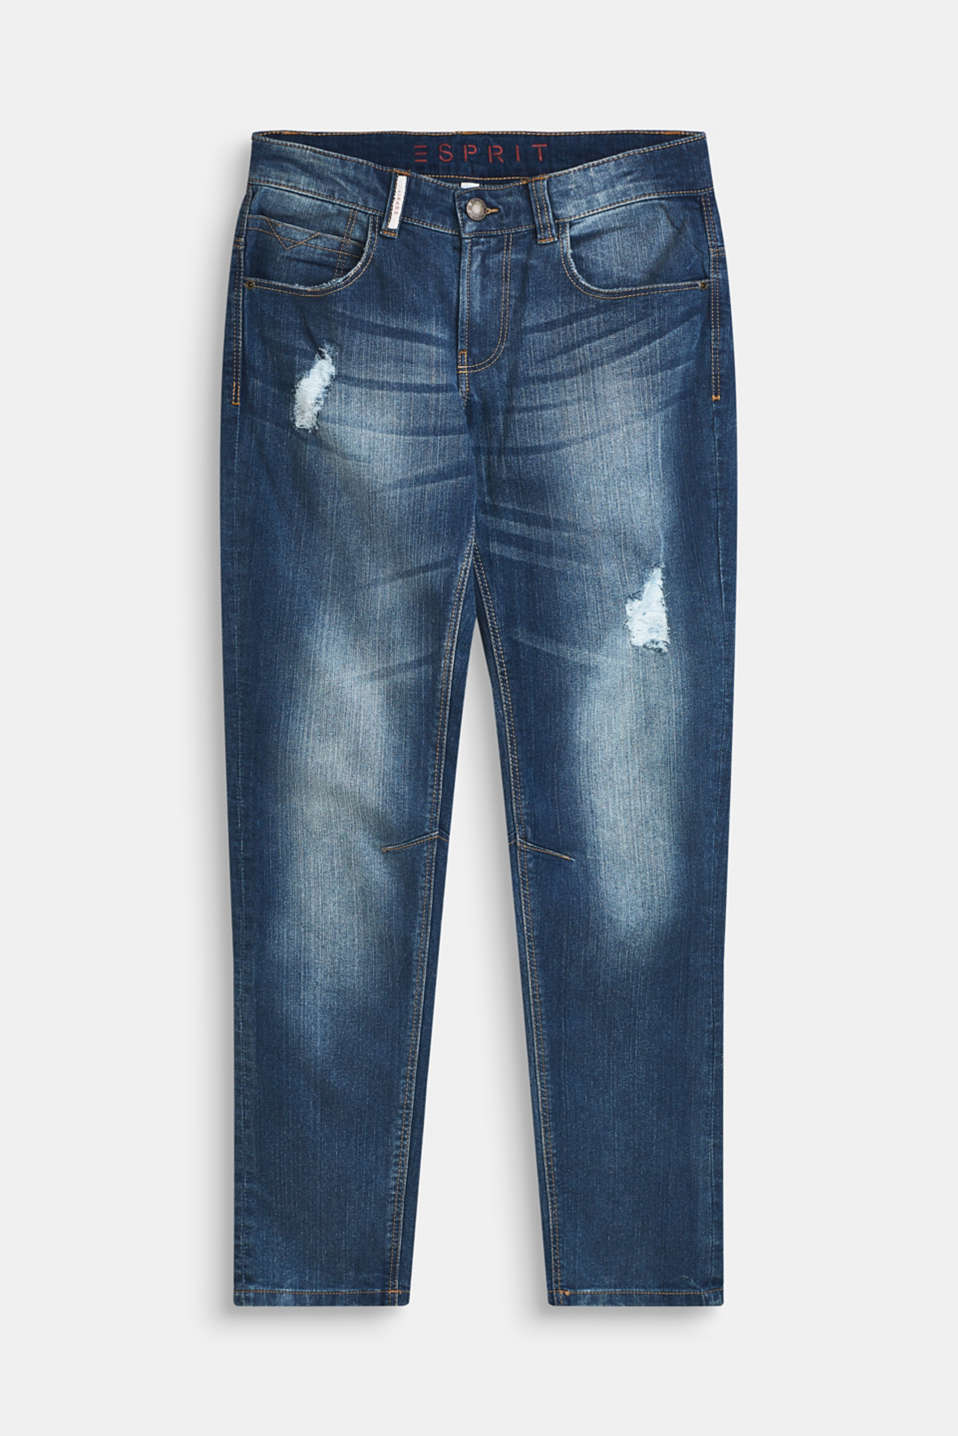 Esprit - Super stretchy jeans with distressed effects